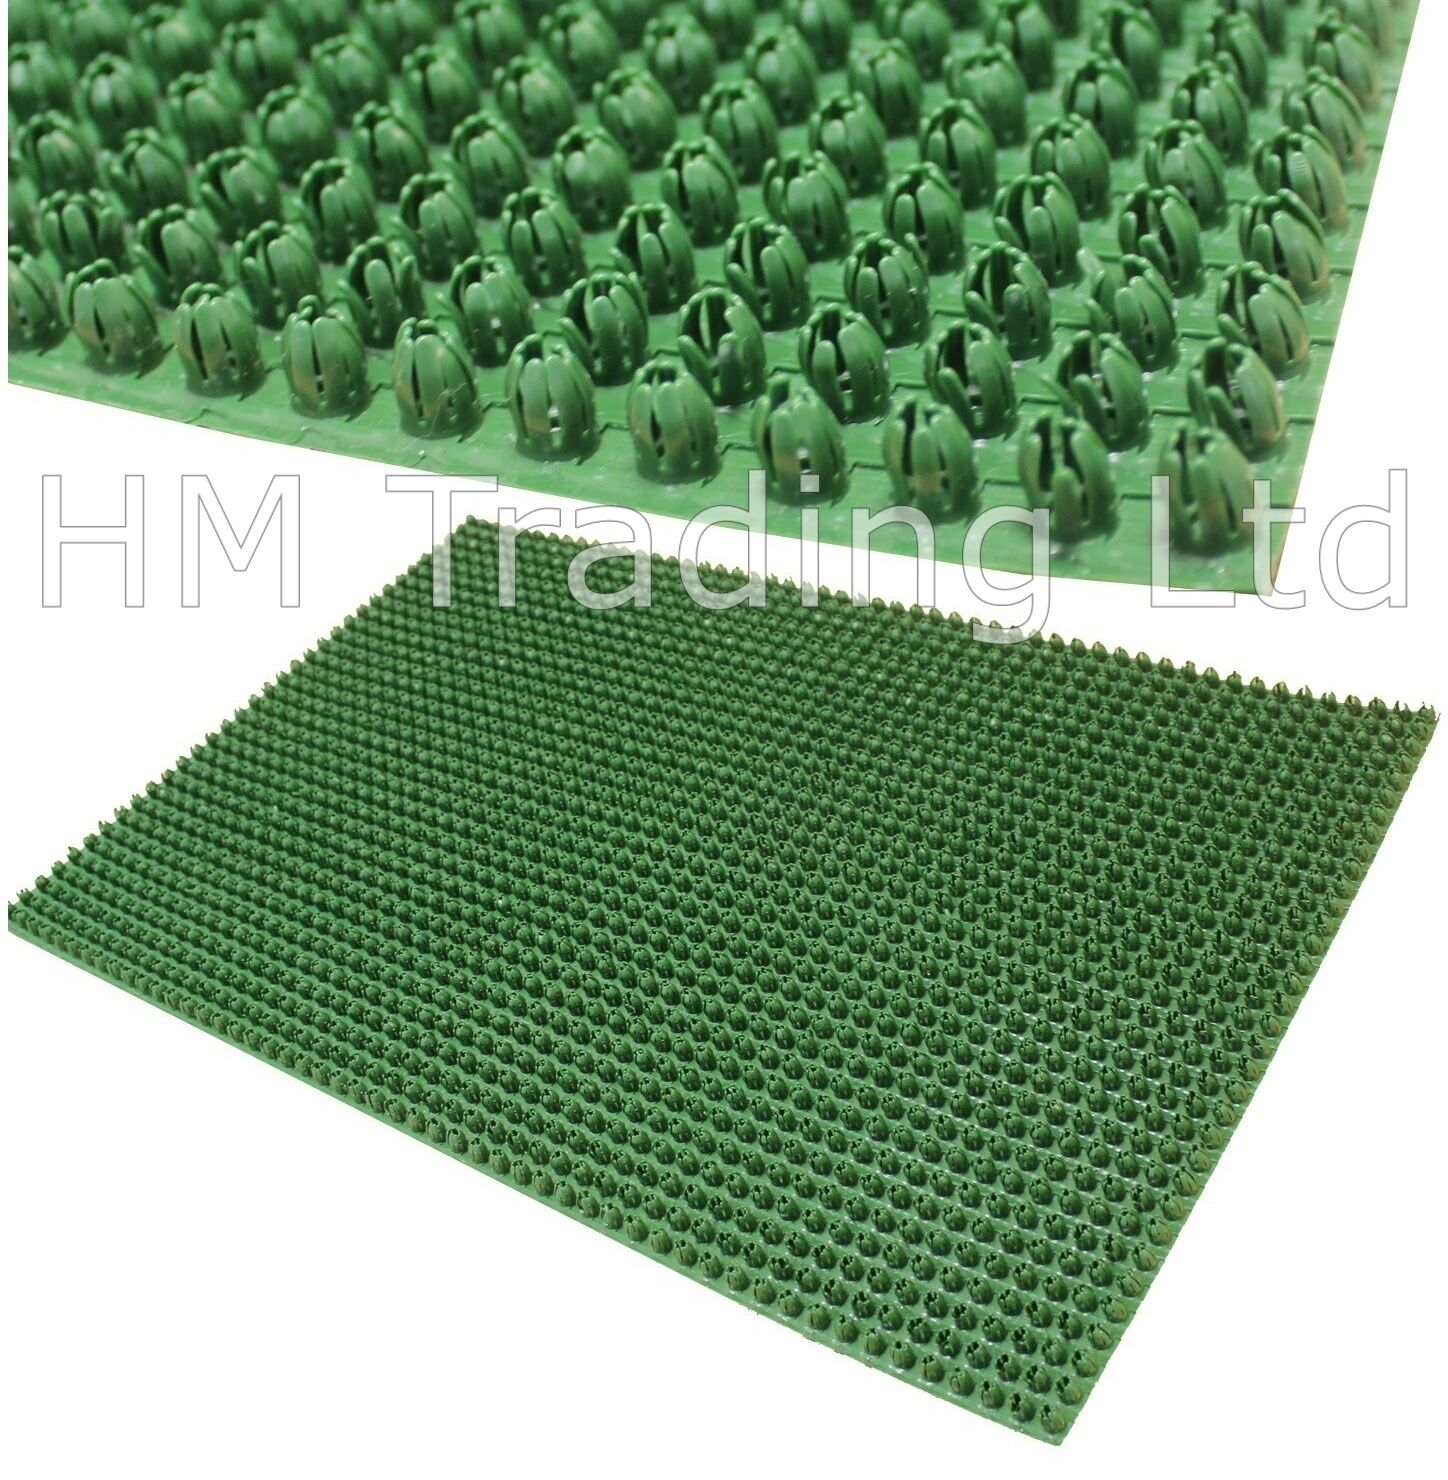 Outdoor Door Mat Plastic Astro Artificial Grass Turf Look Entrance Scraper  sc 1 st  eBay & Outdoor Door Mat Plastic Astro Artificial Grass Turf Look Entrance ...